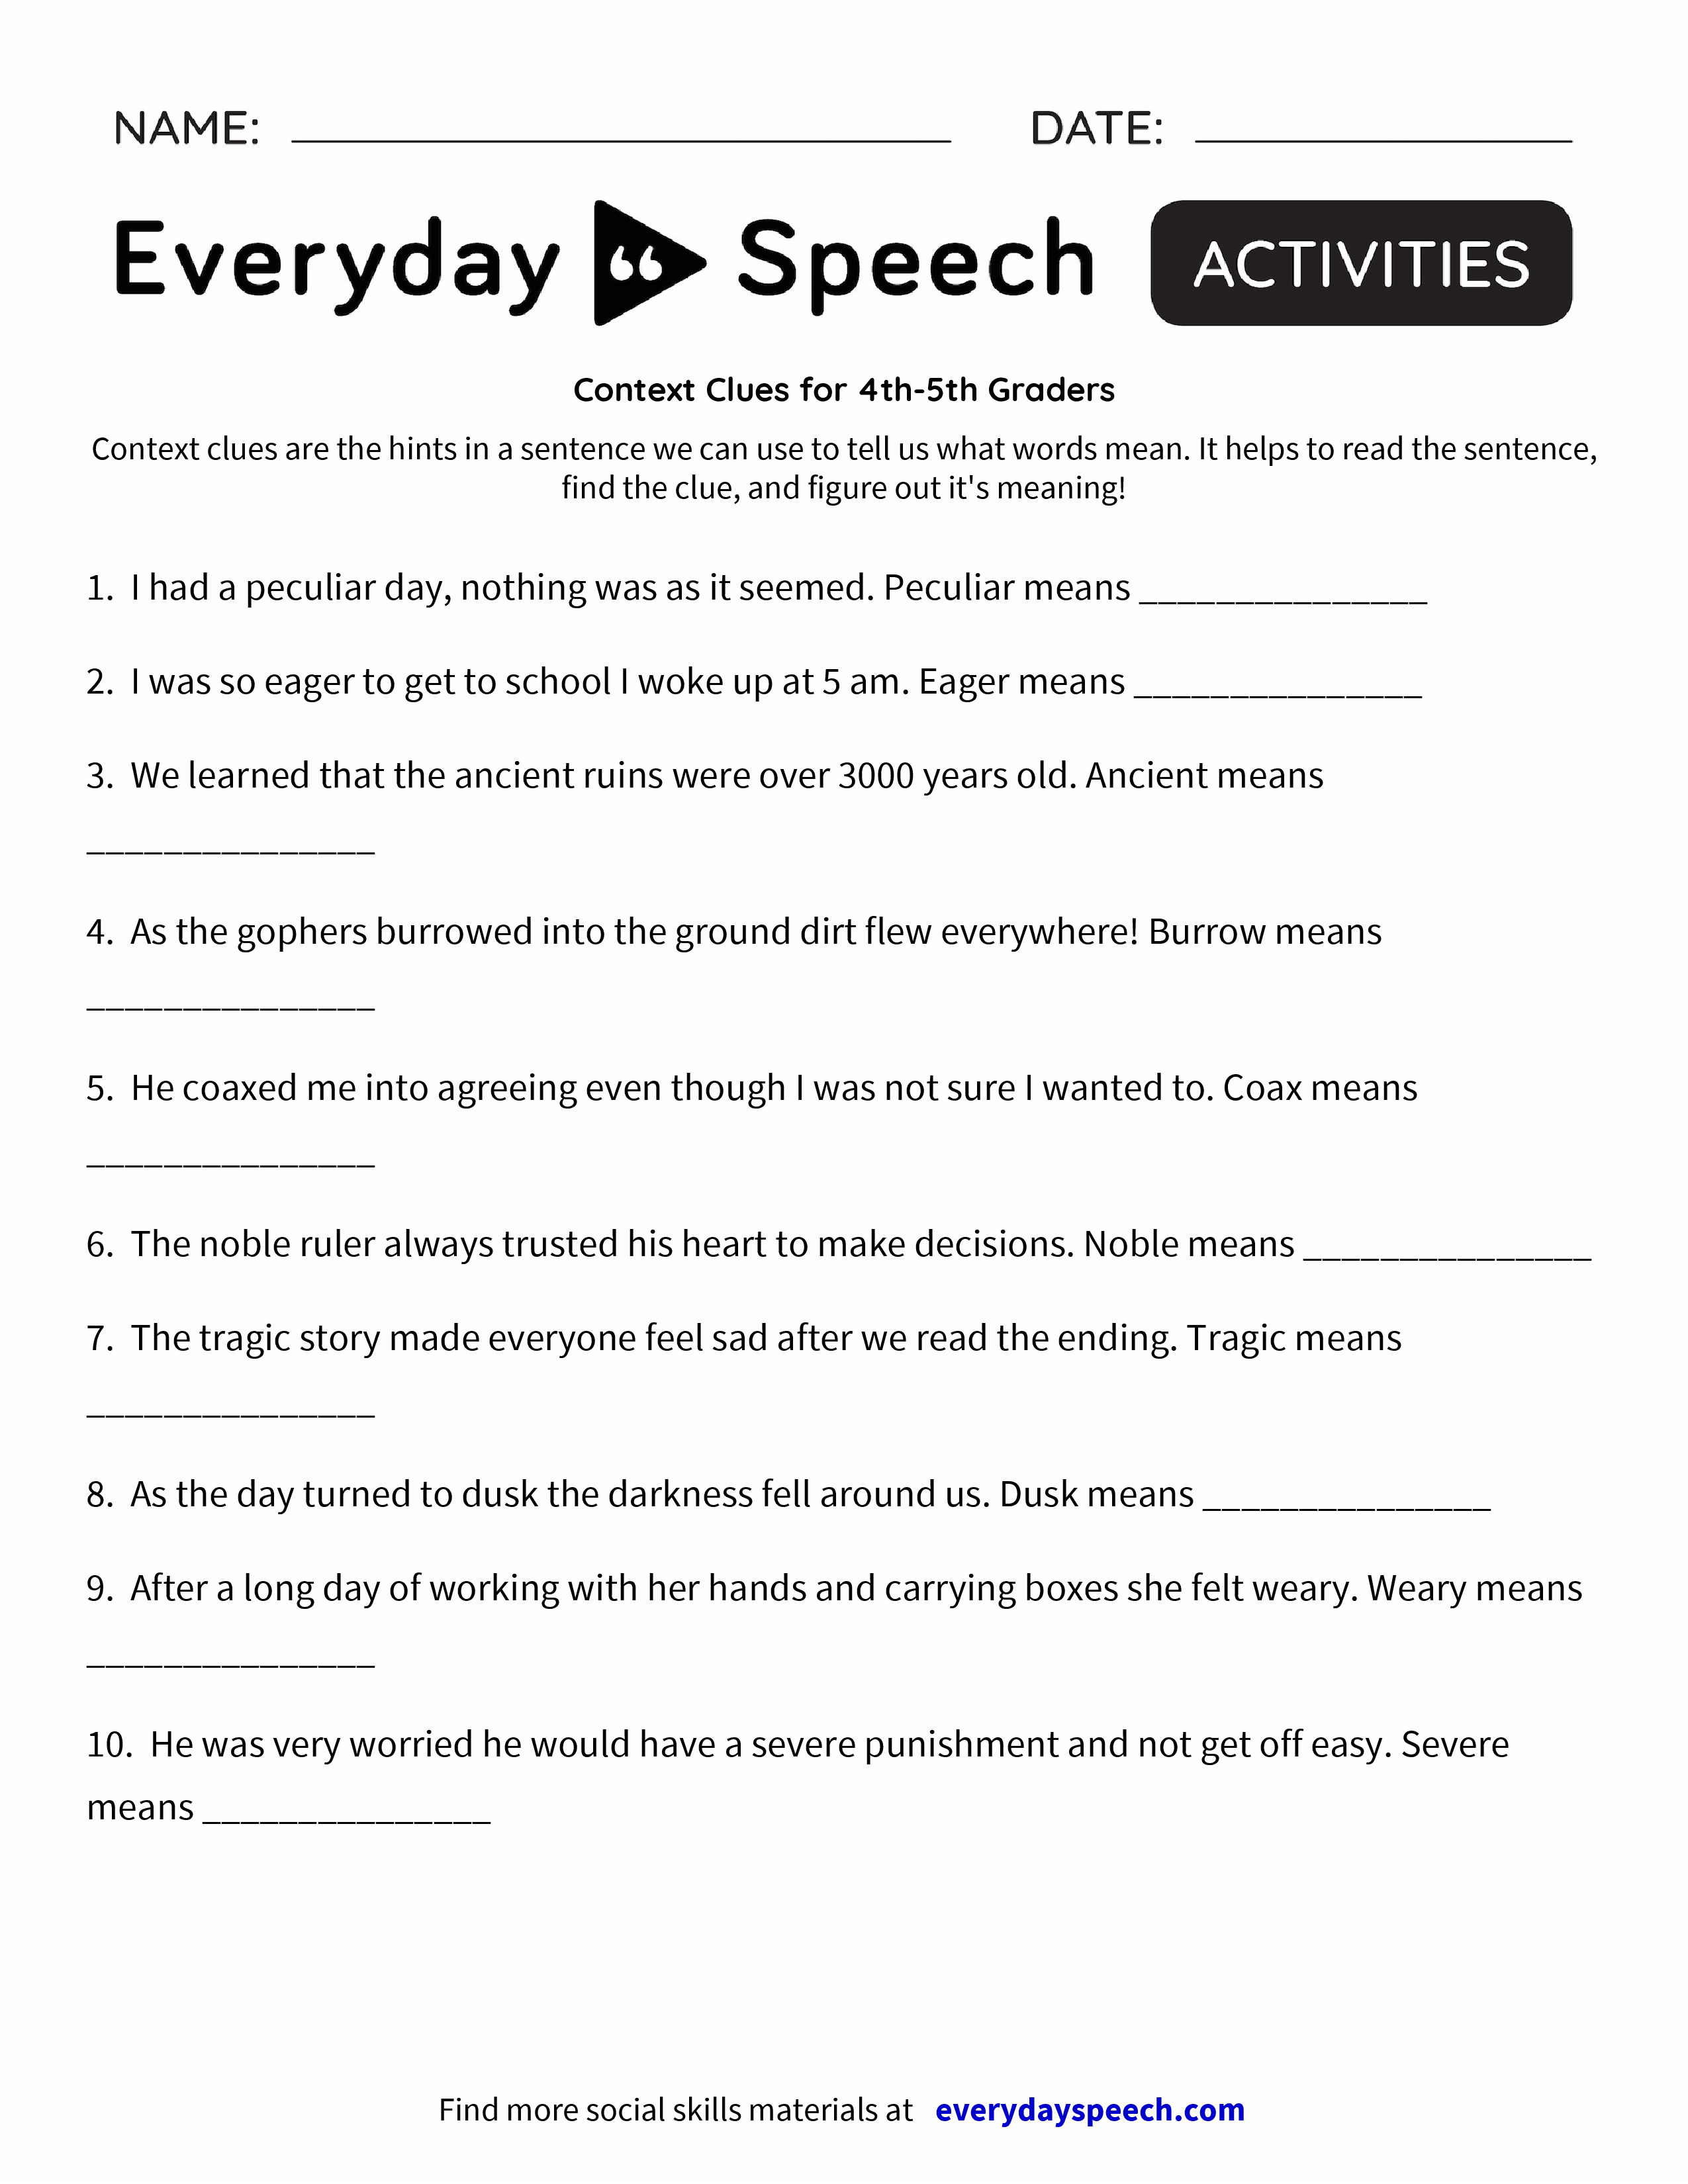 Context Clues Worksheets 5th Grade   Kidz Activities further Free Worksheets Liry   Download and Print Worksheets   Free on furthermore Using Context Clues Worksheet 8th Grade   Kidz Activities in addition vocabulary context clues worksheets – xuger info moreover Context clues 5th grade worksheet  747215   Myscres together with  together with 56 Context Clues Workshets 3rd Grade  Context Clues Worksheets  Free besides Context Clues Worksheets 5th Grade Printable   Proga   Info also context clues worksheets multiple choice – lesrosesdor info together with Homographs and Context Clues   High Worksheets likewise Context Clues Worksheets 5th Grade Pdf additionally Context Clues Worksheet 5Th Grade Worksheets for all   Download and further Context Clues Worksheets 5th Grade Pdf Luxury Context Clues in addition Look Around  Meaning in Context   Context Clues   Pinterest moreover context clues worksheets – michaeltedja furthermore Context Clues Worksheets 5th Grade Pdf This Context Clues Ksheet Is. on context clues worksheets 5th grade